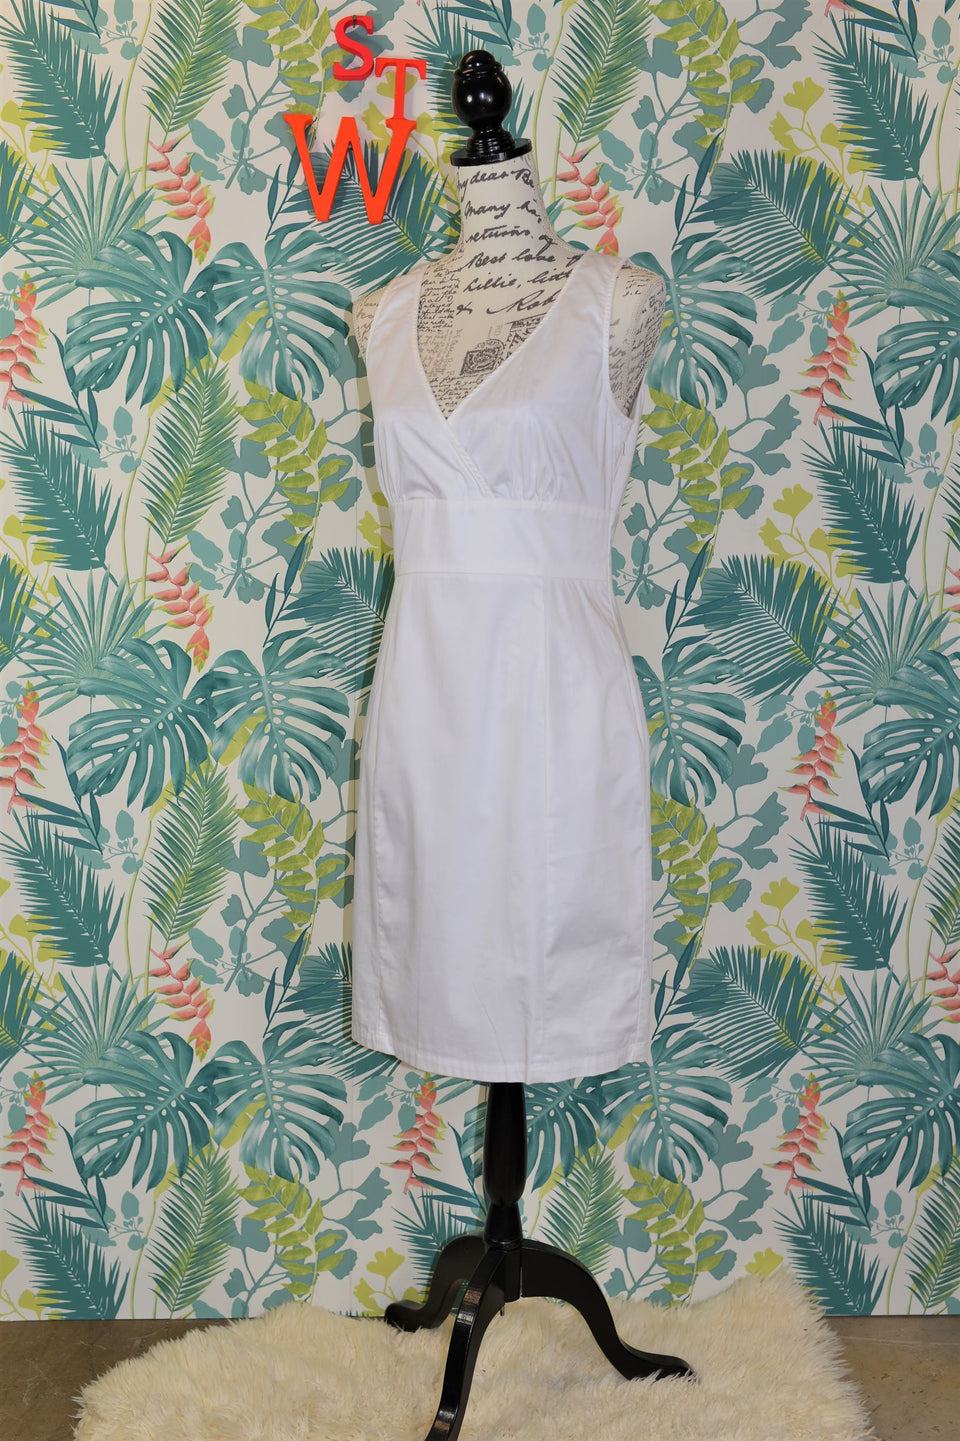 White sleeveless cotton shift style LOVE MOSCHINO Dress, Size 12. Pre-loved.